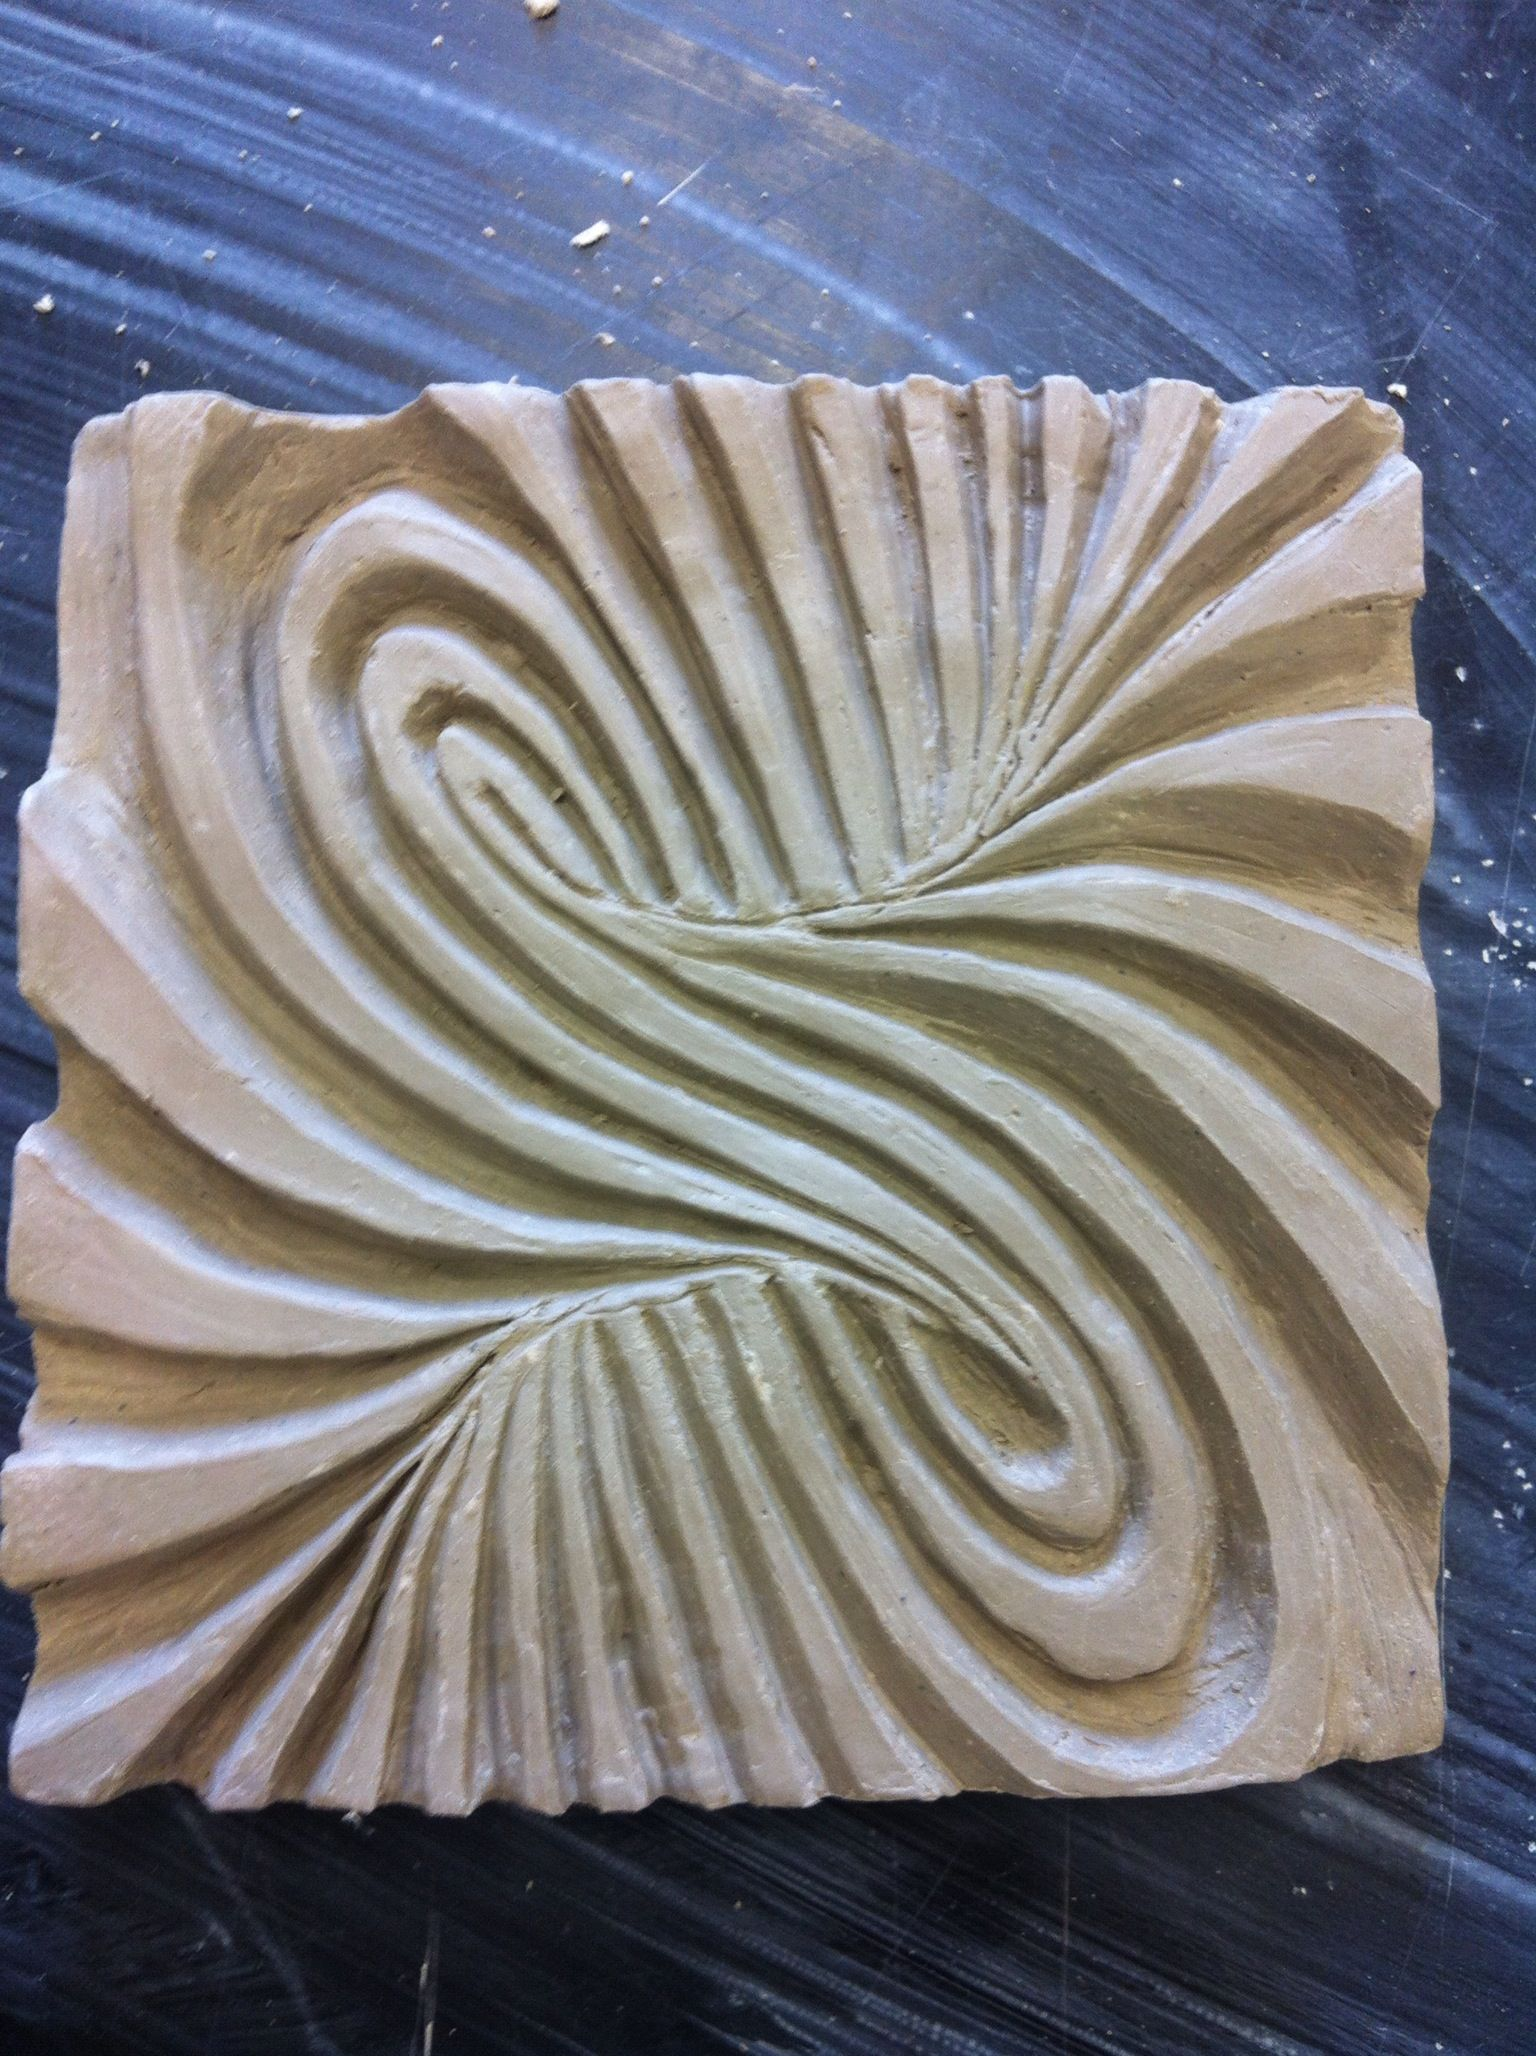 5x5 Ceramic Tile Relief Carving This Is Complex But The